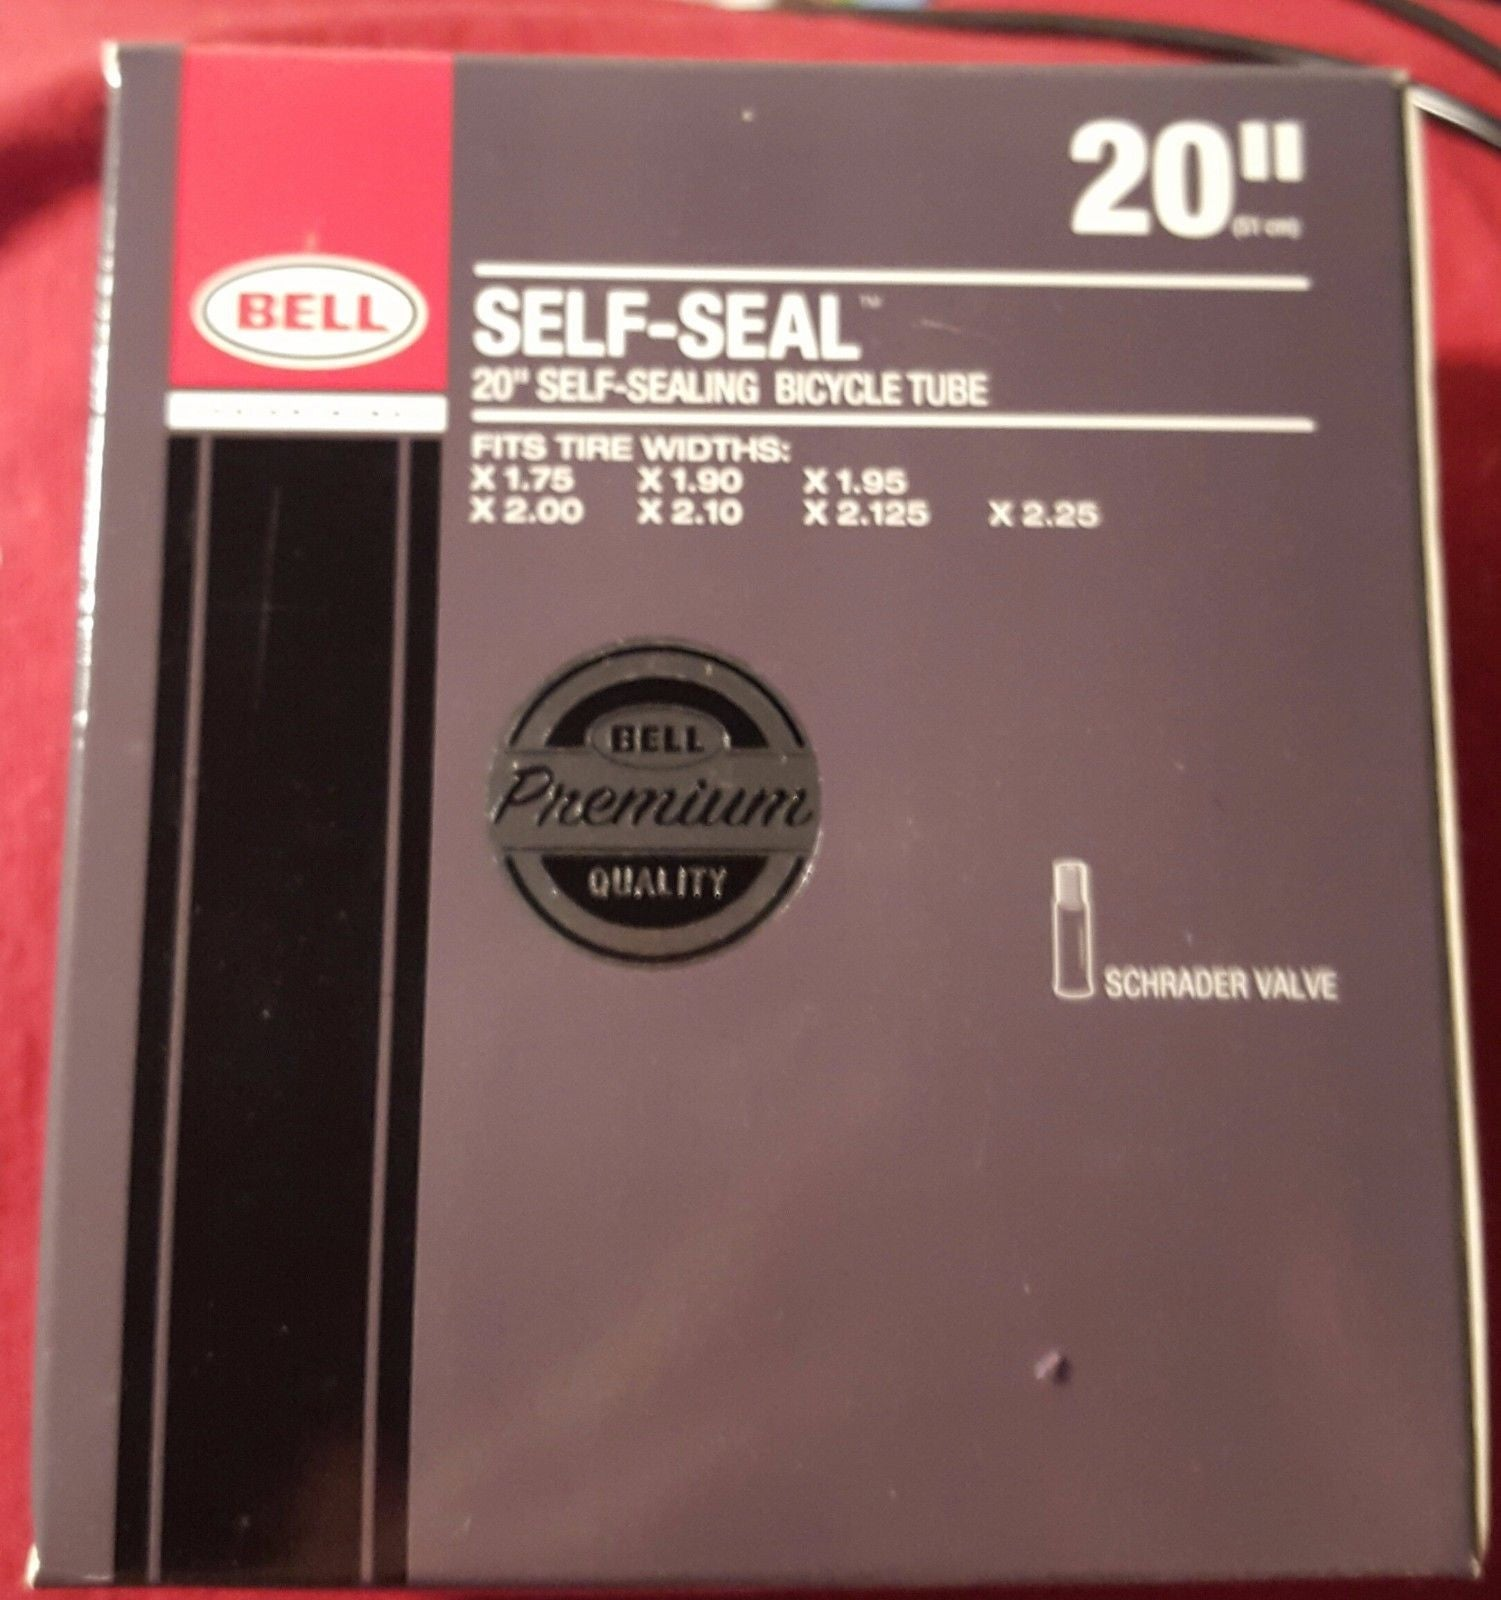 Bell Self Sealing 20''x1.75-2.25'' Schrader Valve Tube